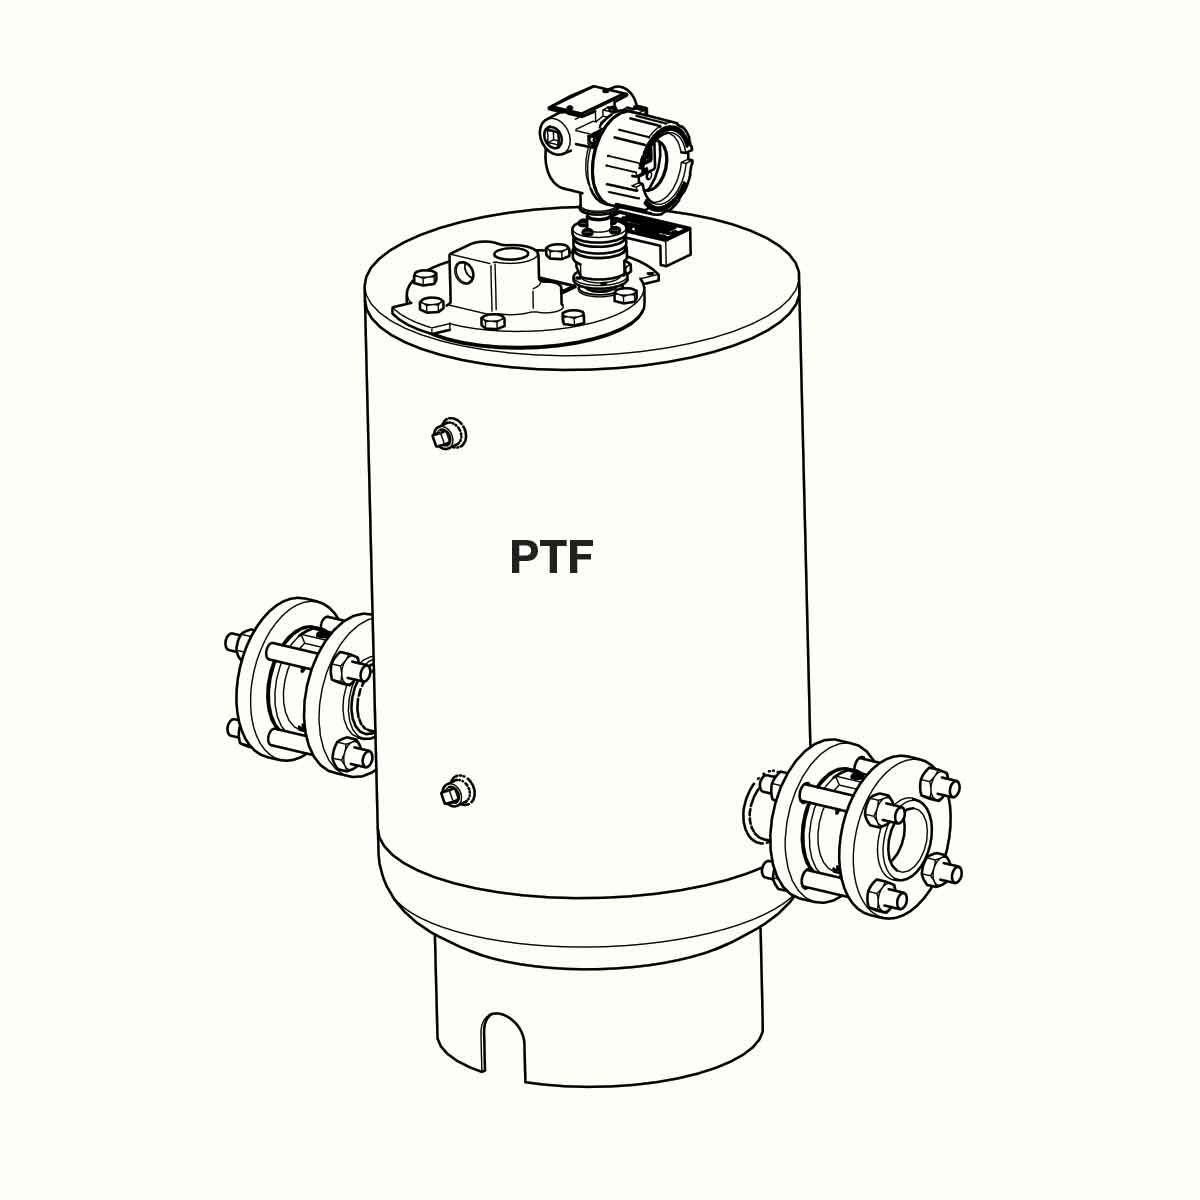 Spirax Sarco Non Electric Pump Traps For Heating And Cooling